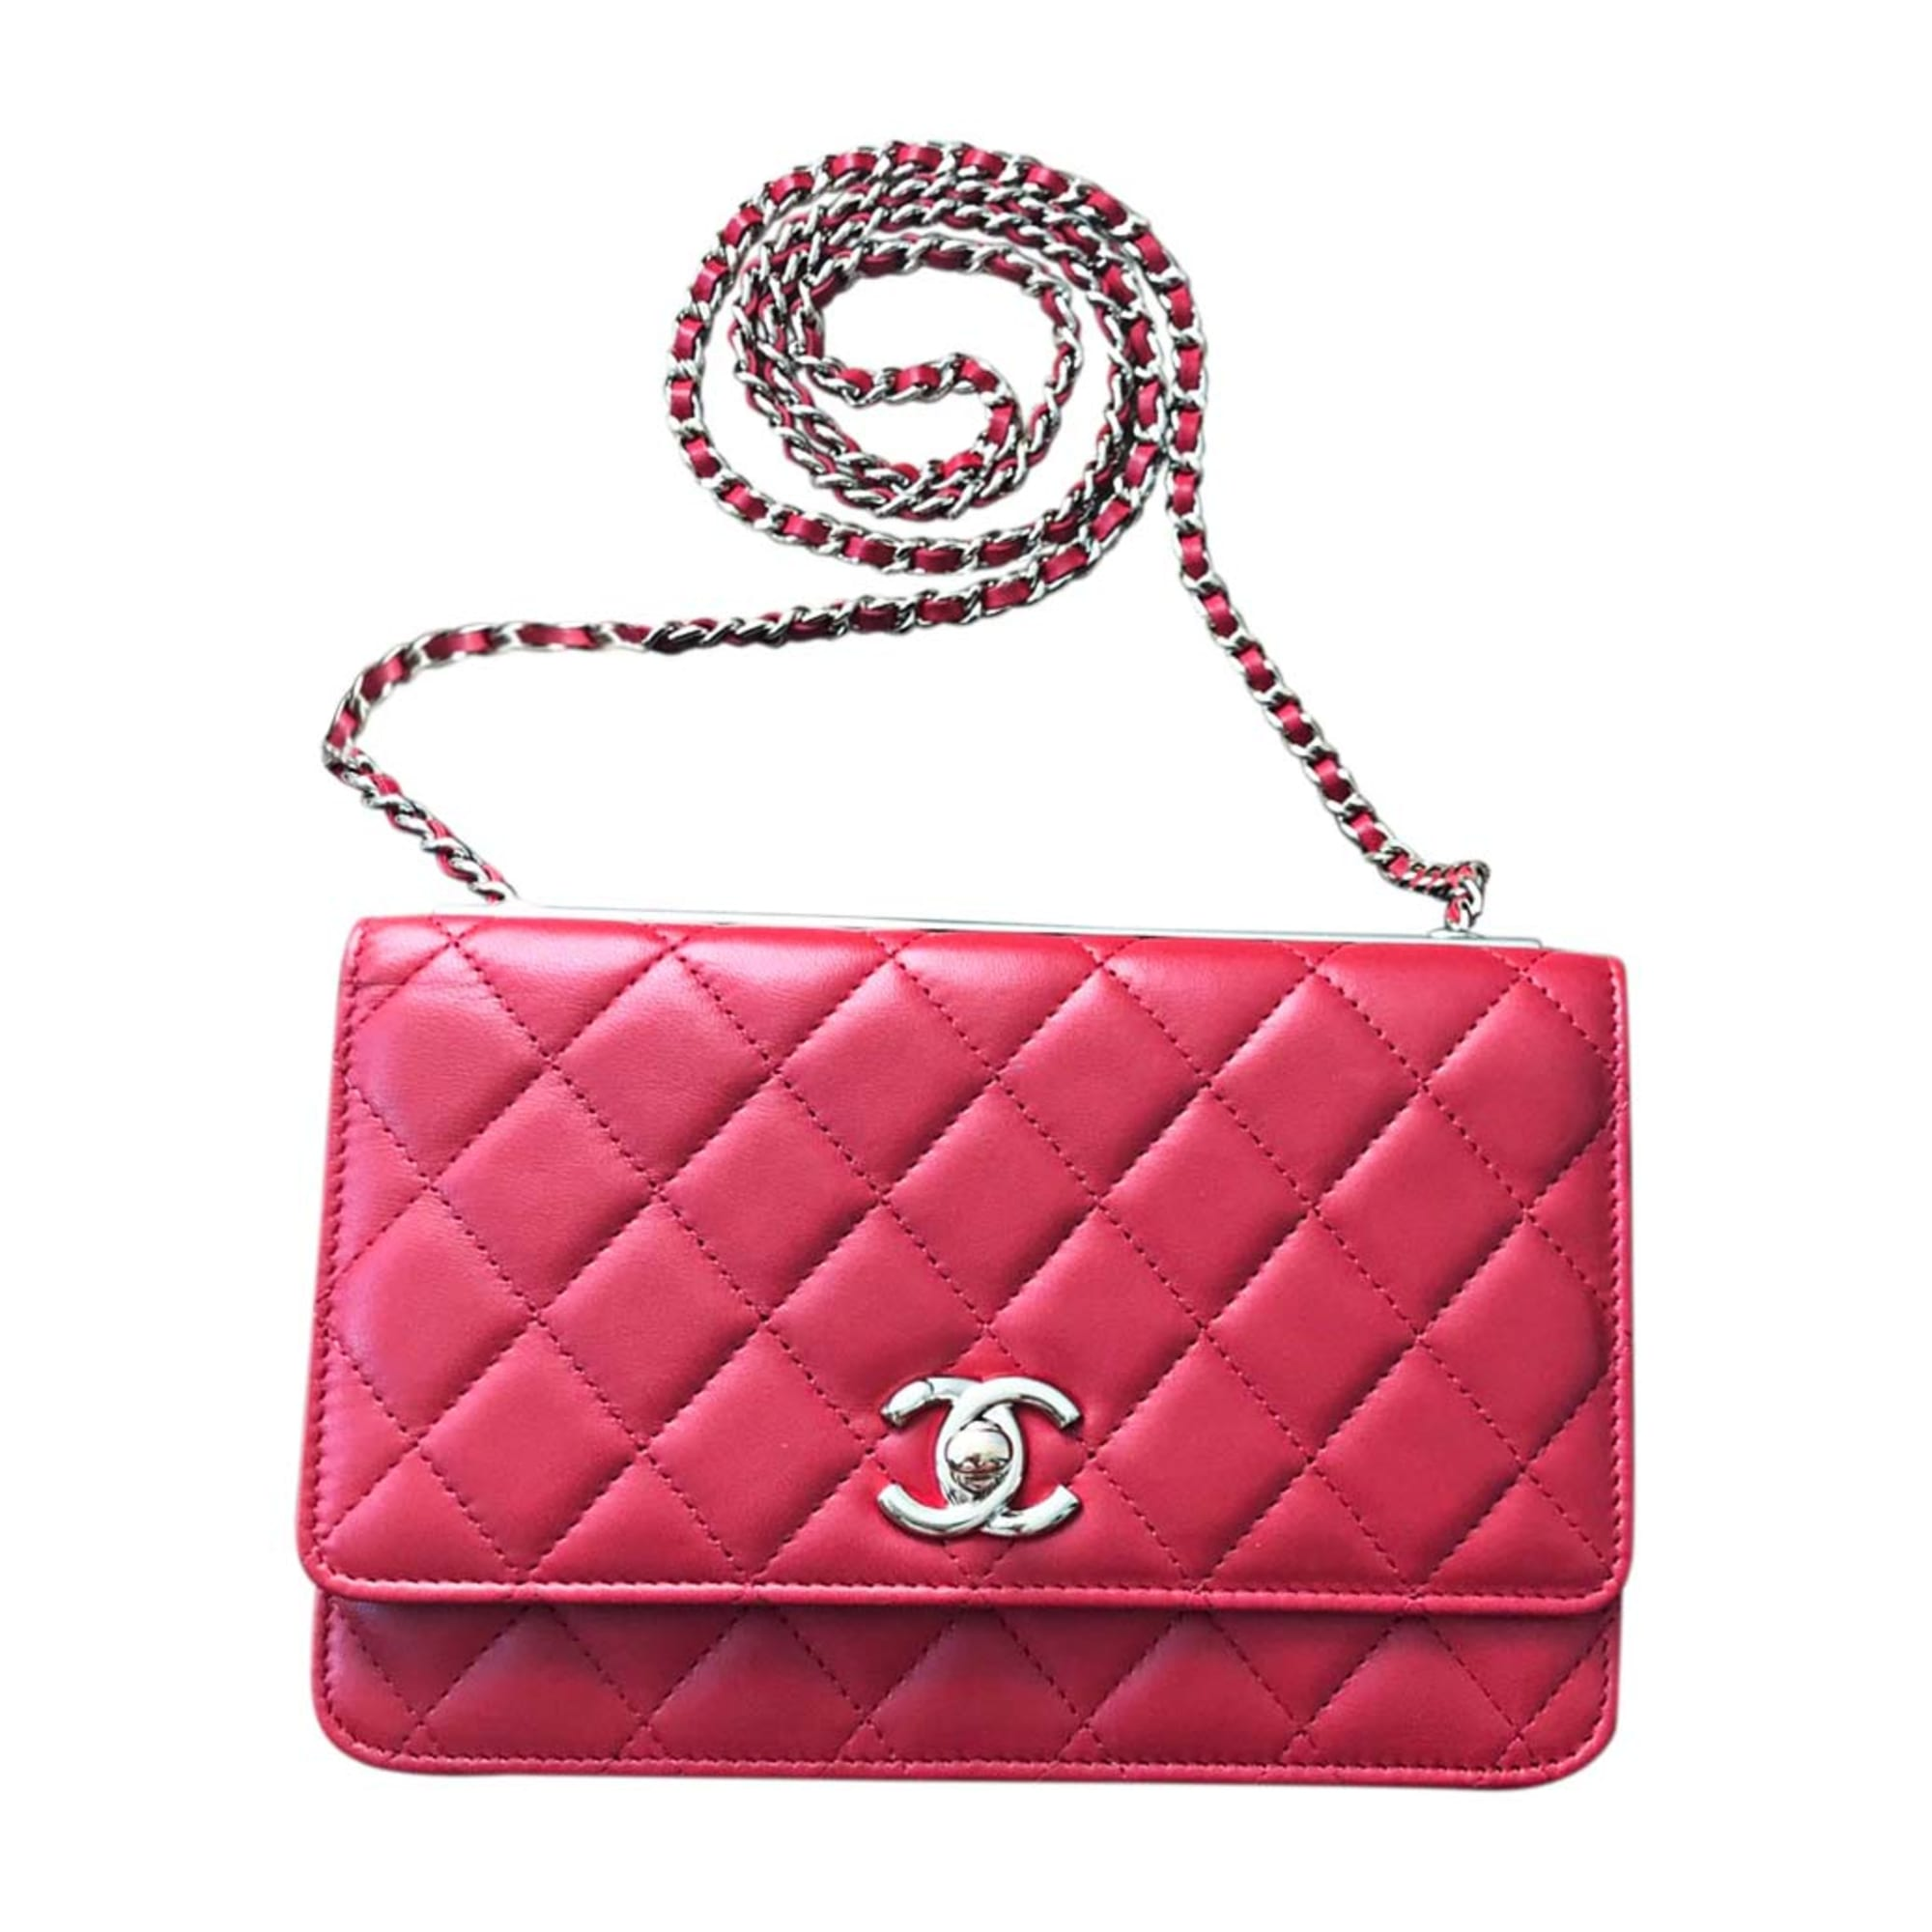 Leather Handbag CHANEL Wallet-On-Chain Red, burgundy